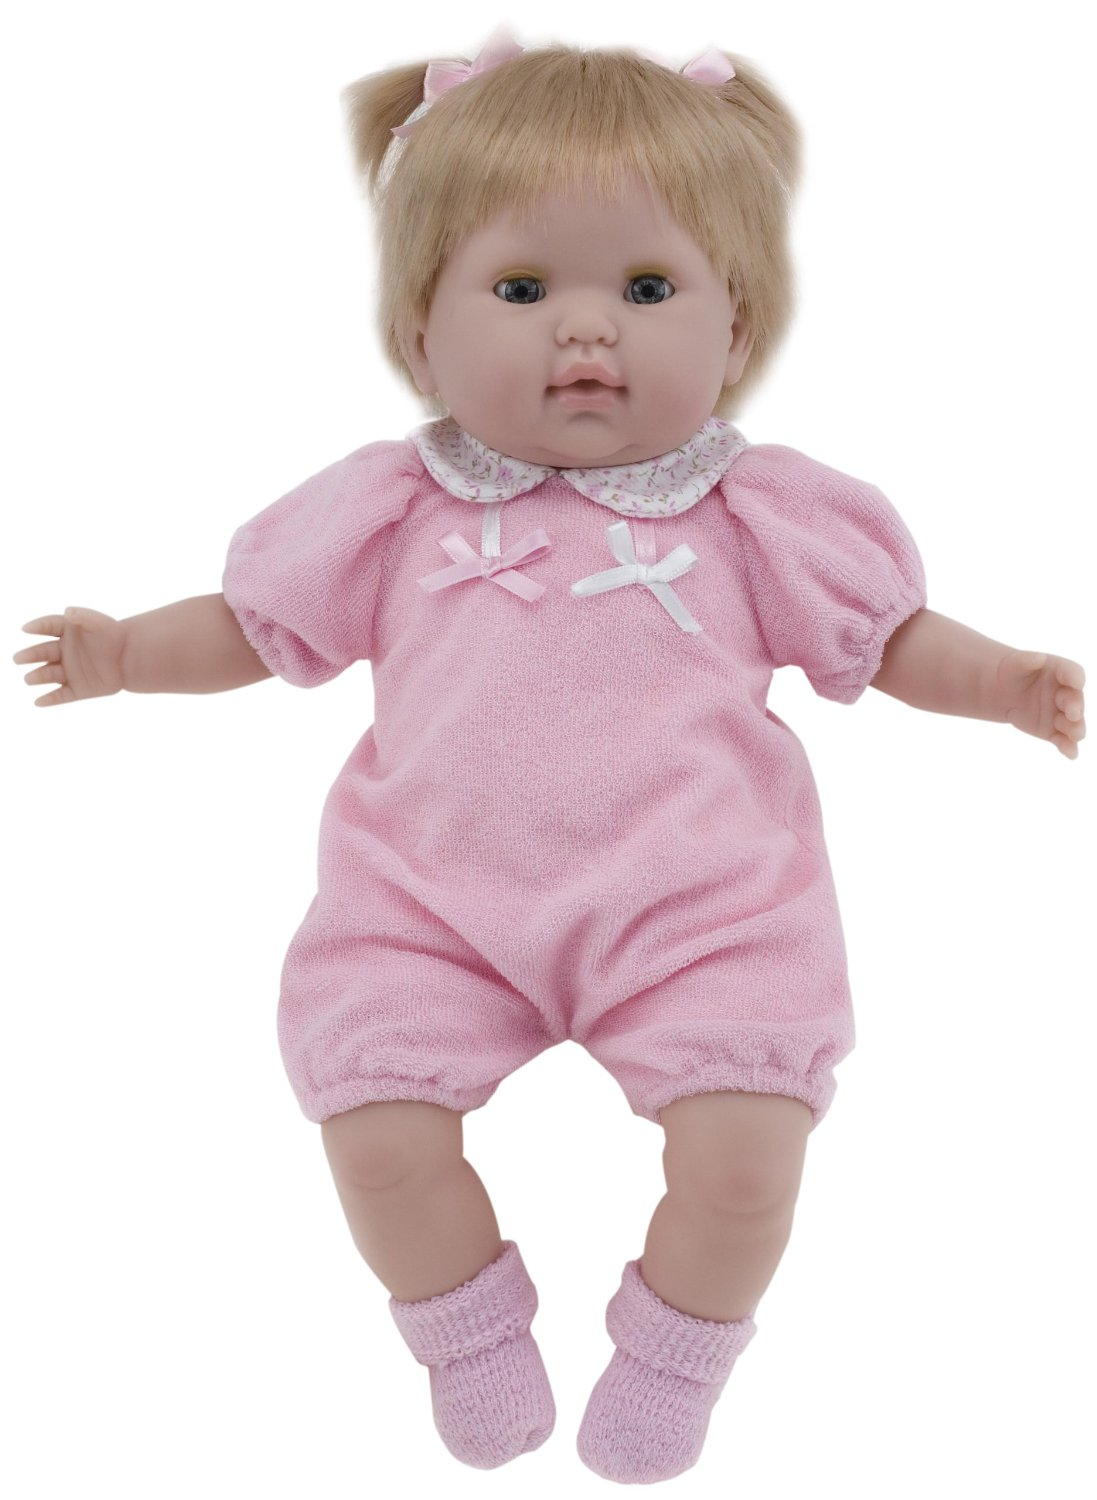 "15"" Dolls by Berenguer Nonis Baby Doll, Pink and white Outfit"